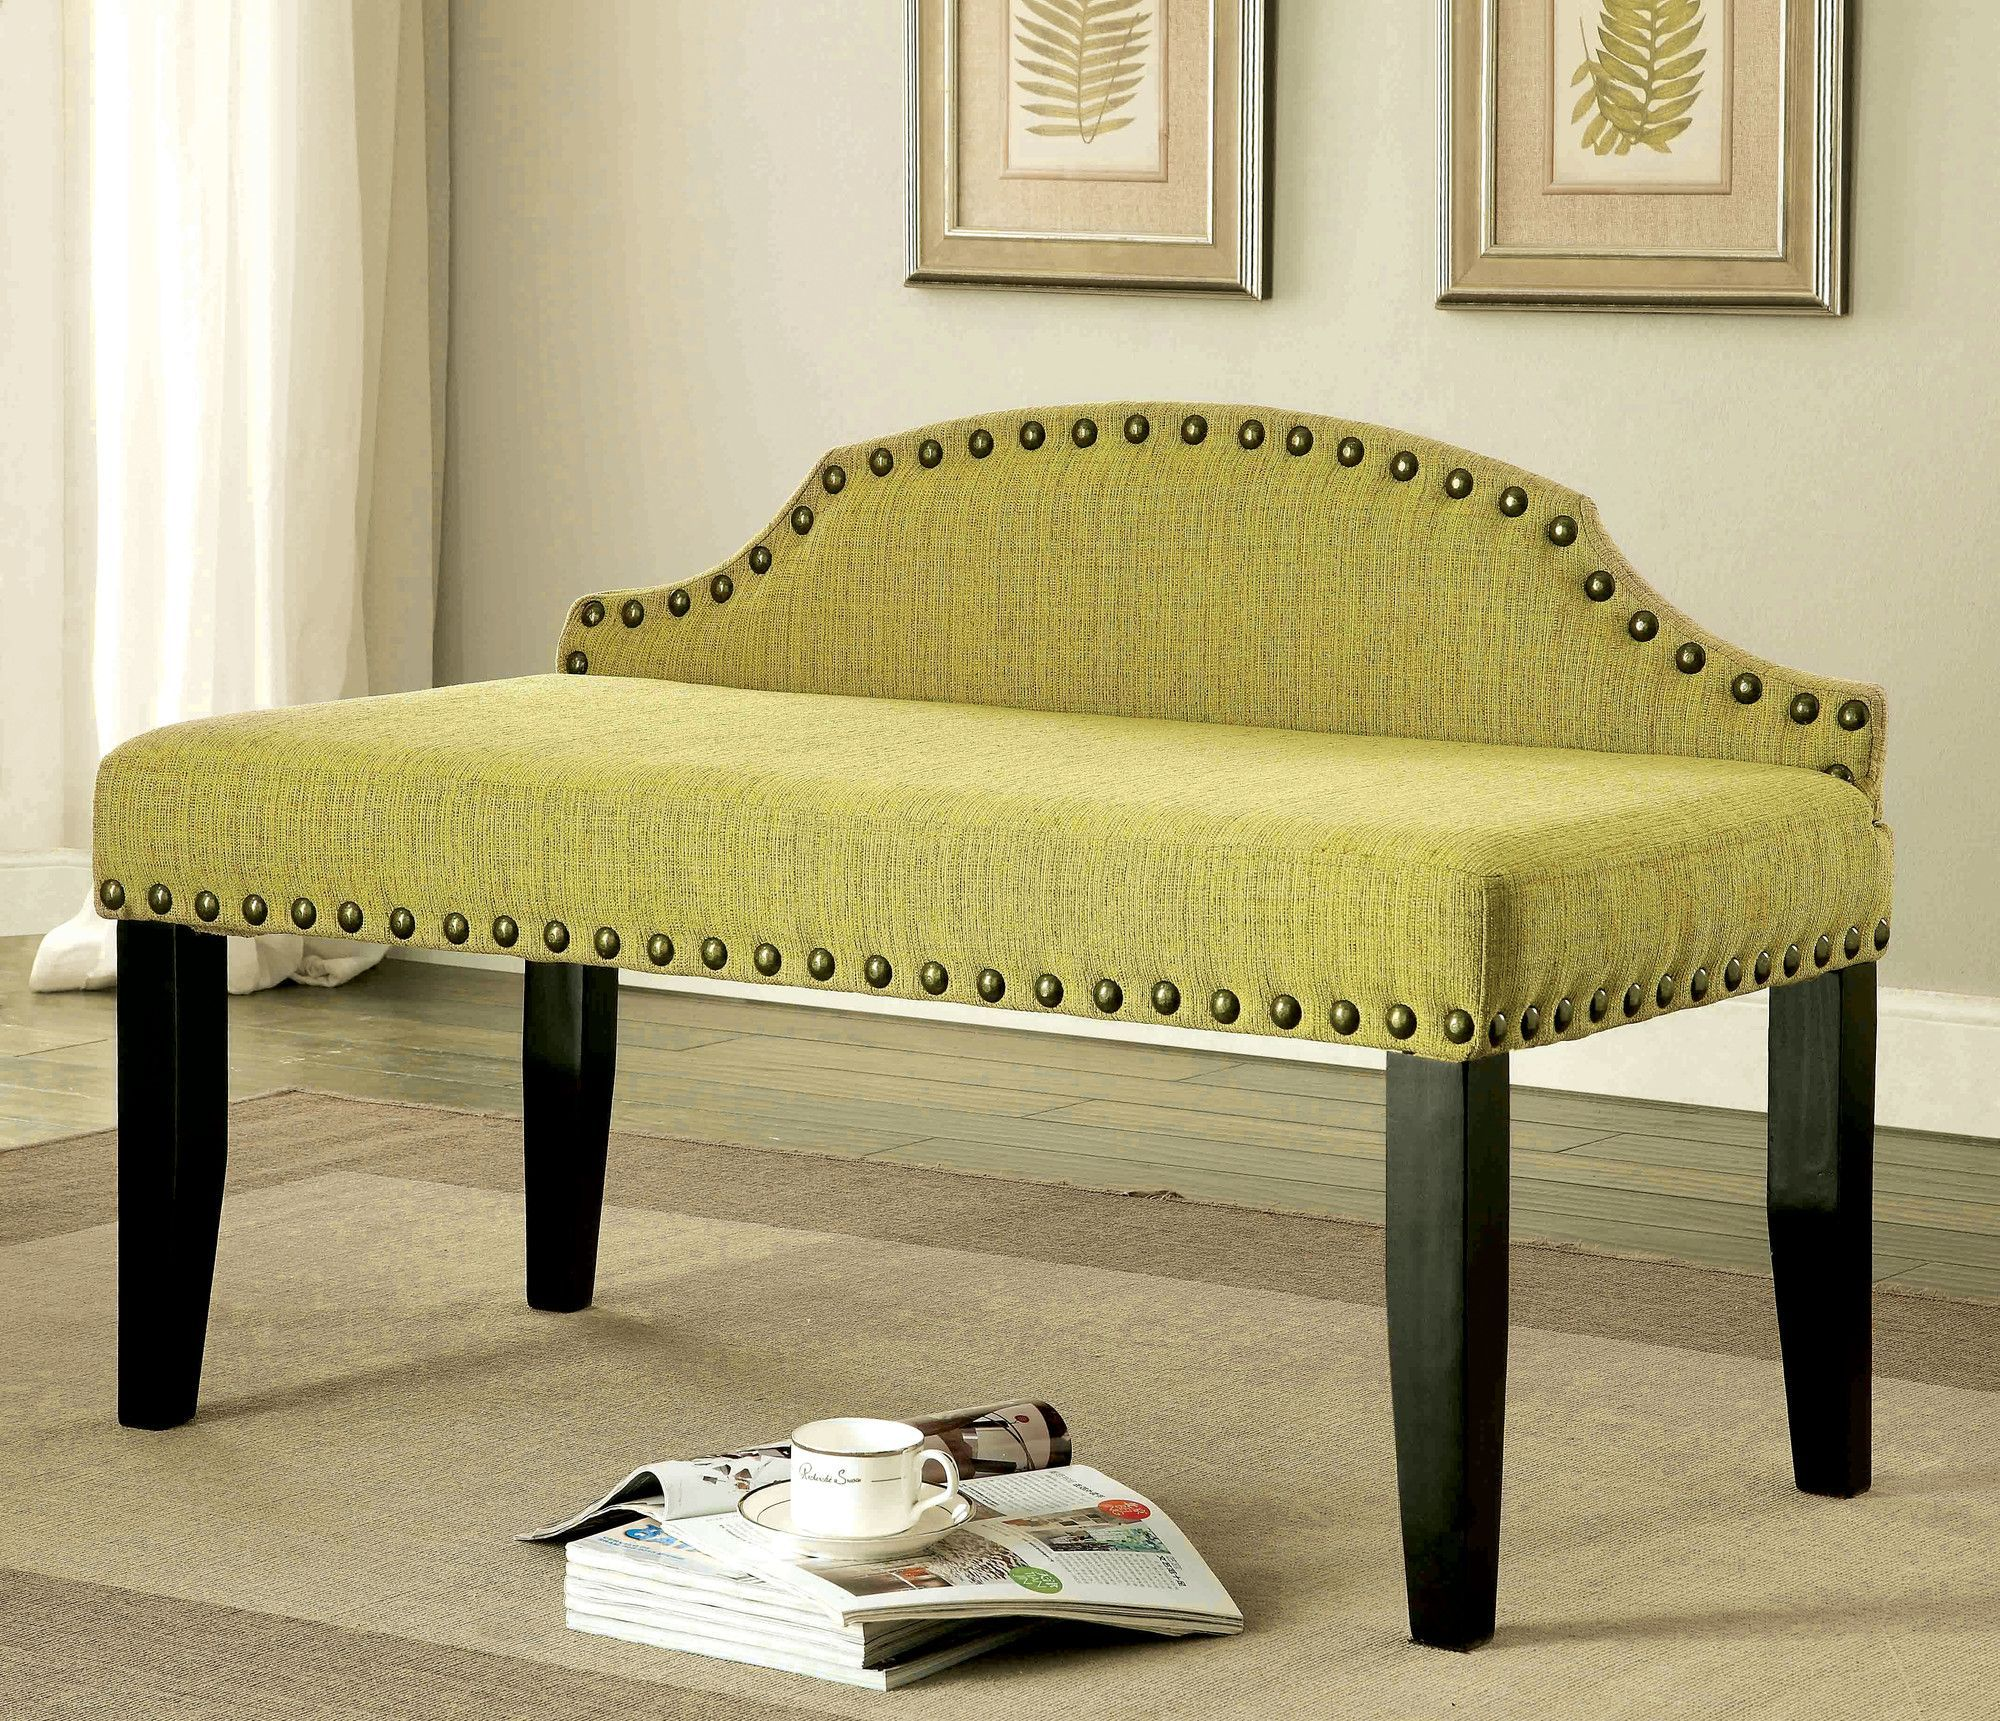 Coressance Upholstered Bedroom Bench Products Pinterest